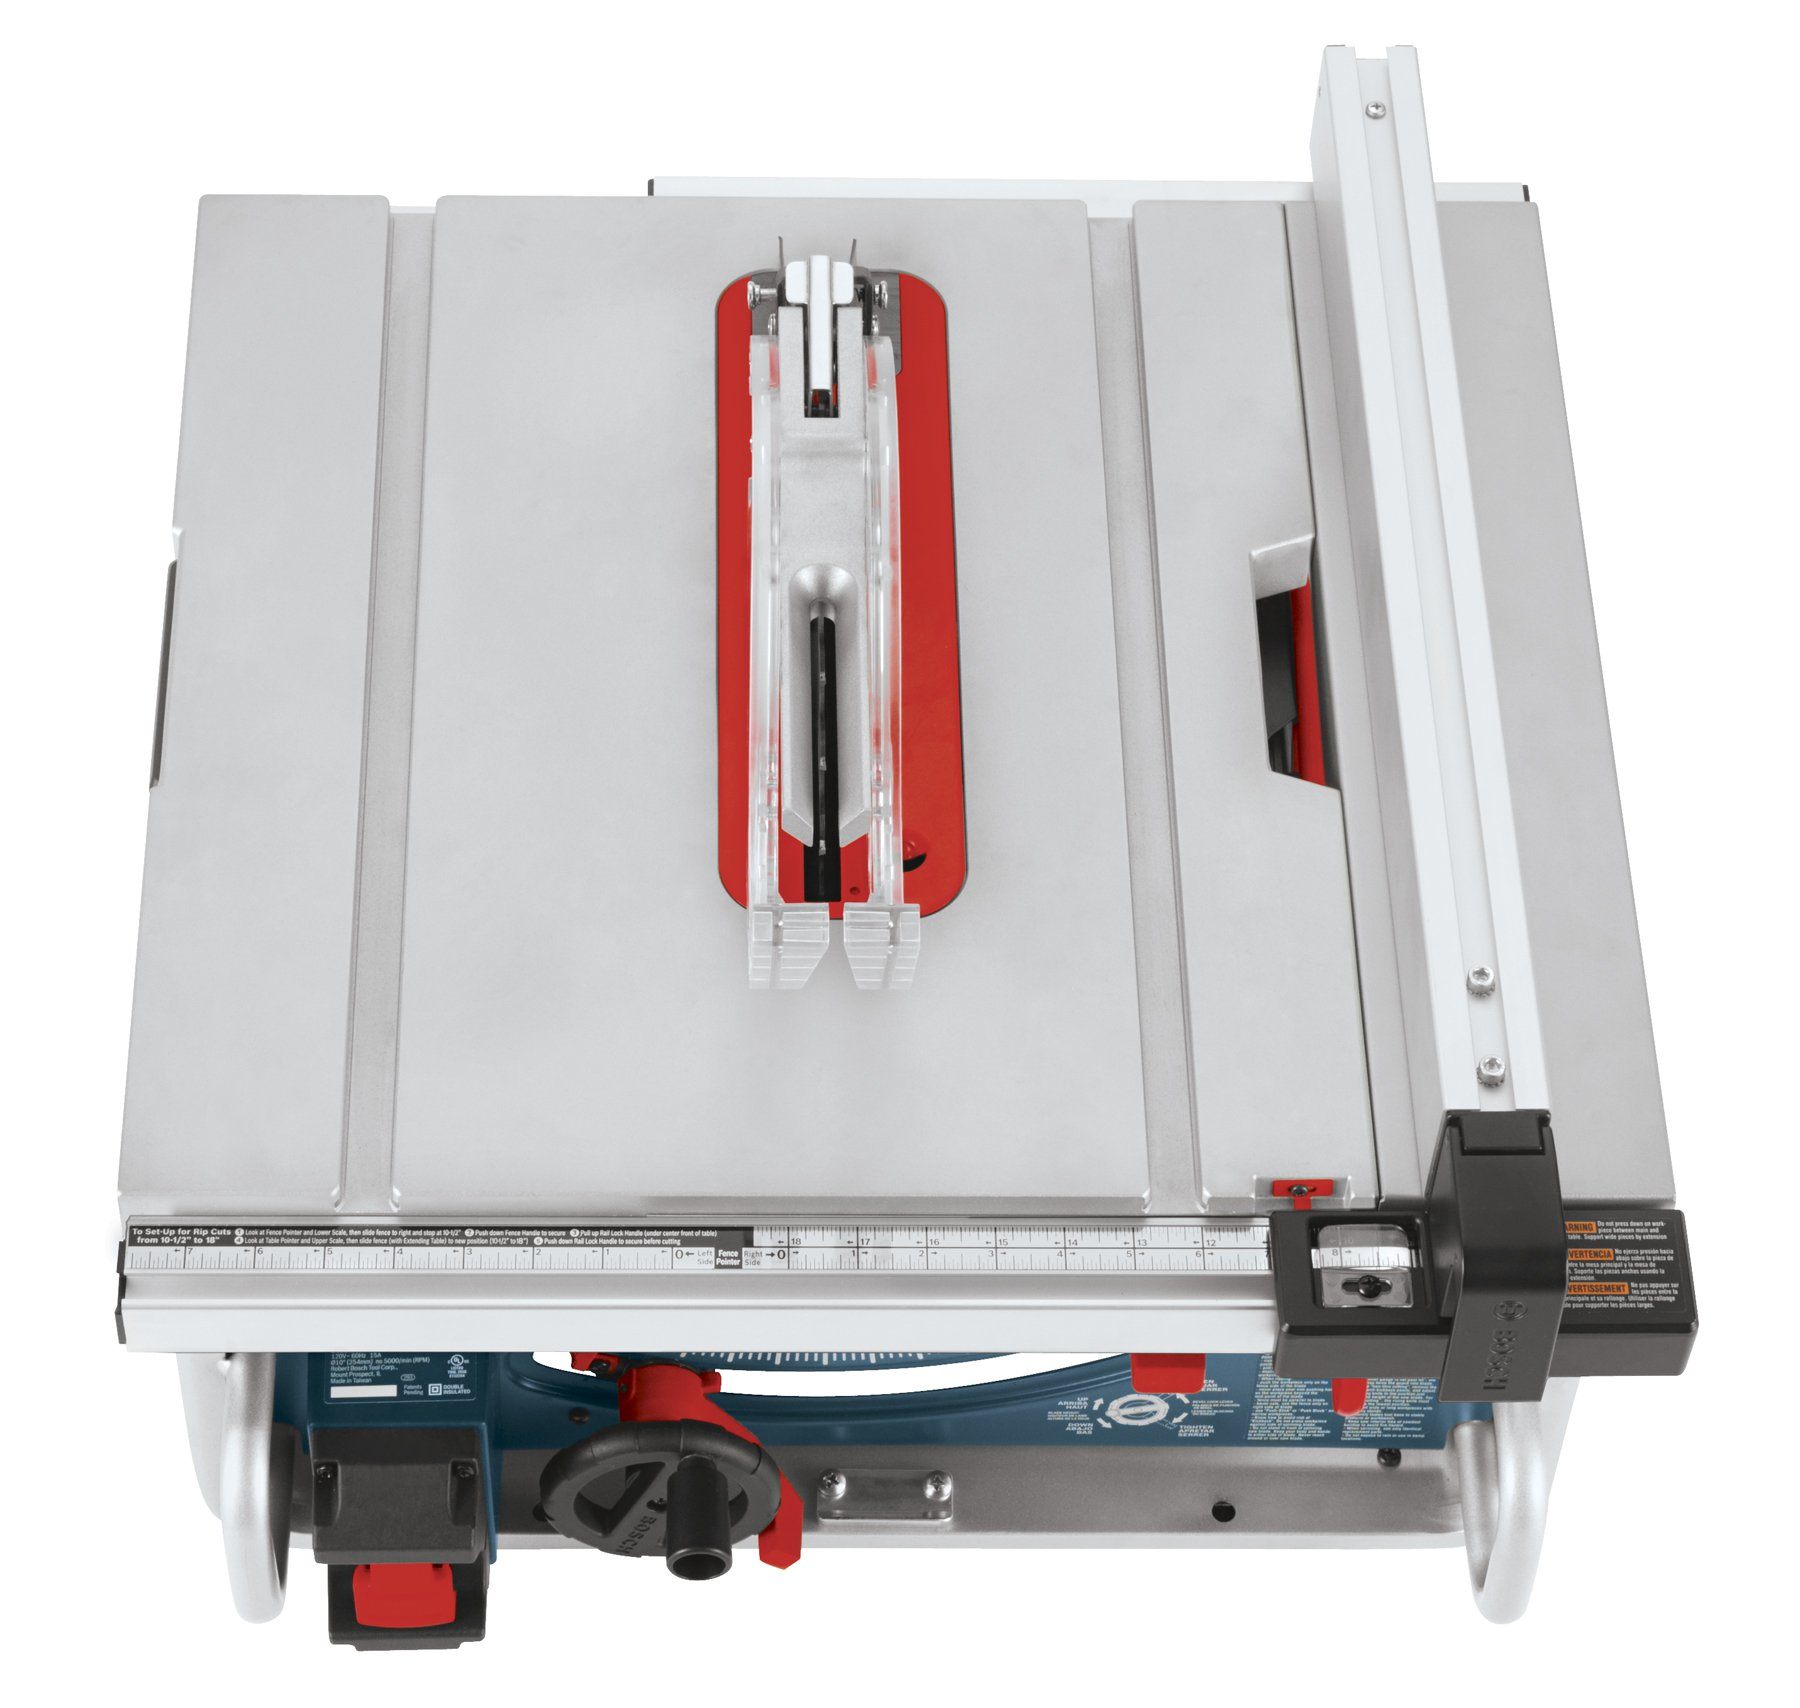 Bosch 10-Inch Portable Jobsite Table Saw GTS1031 with One-Handed Carry Handle by Bosch